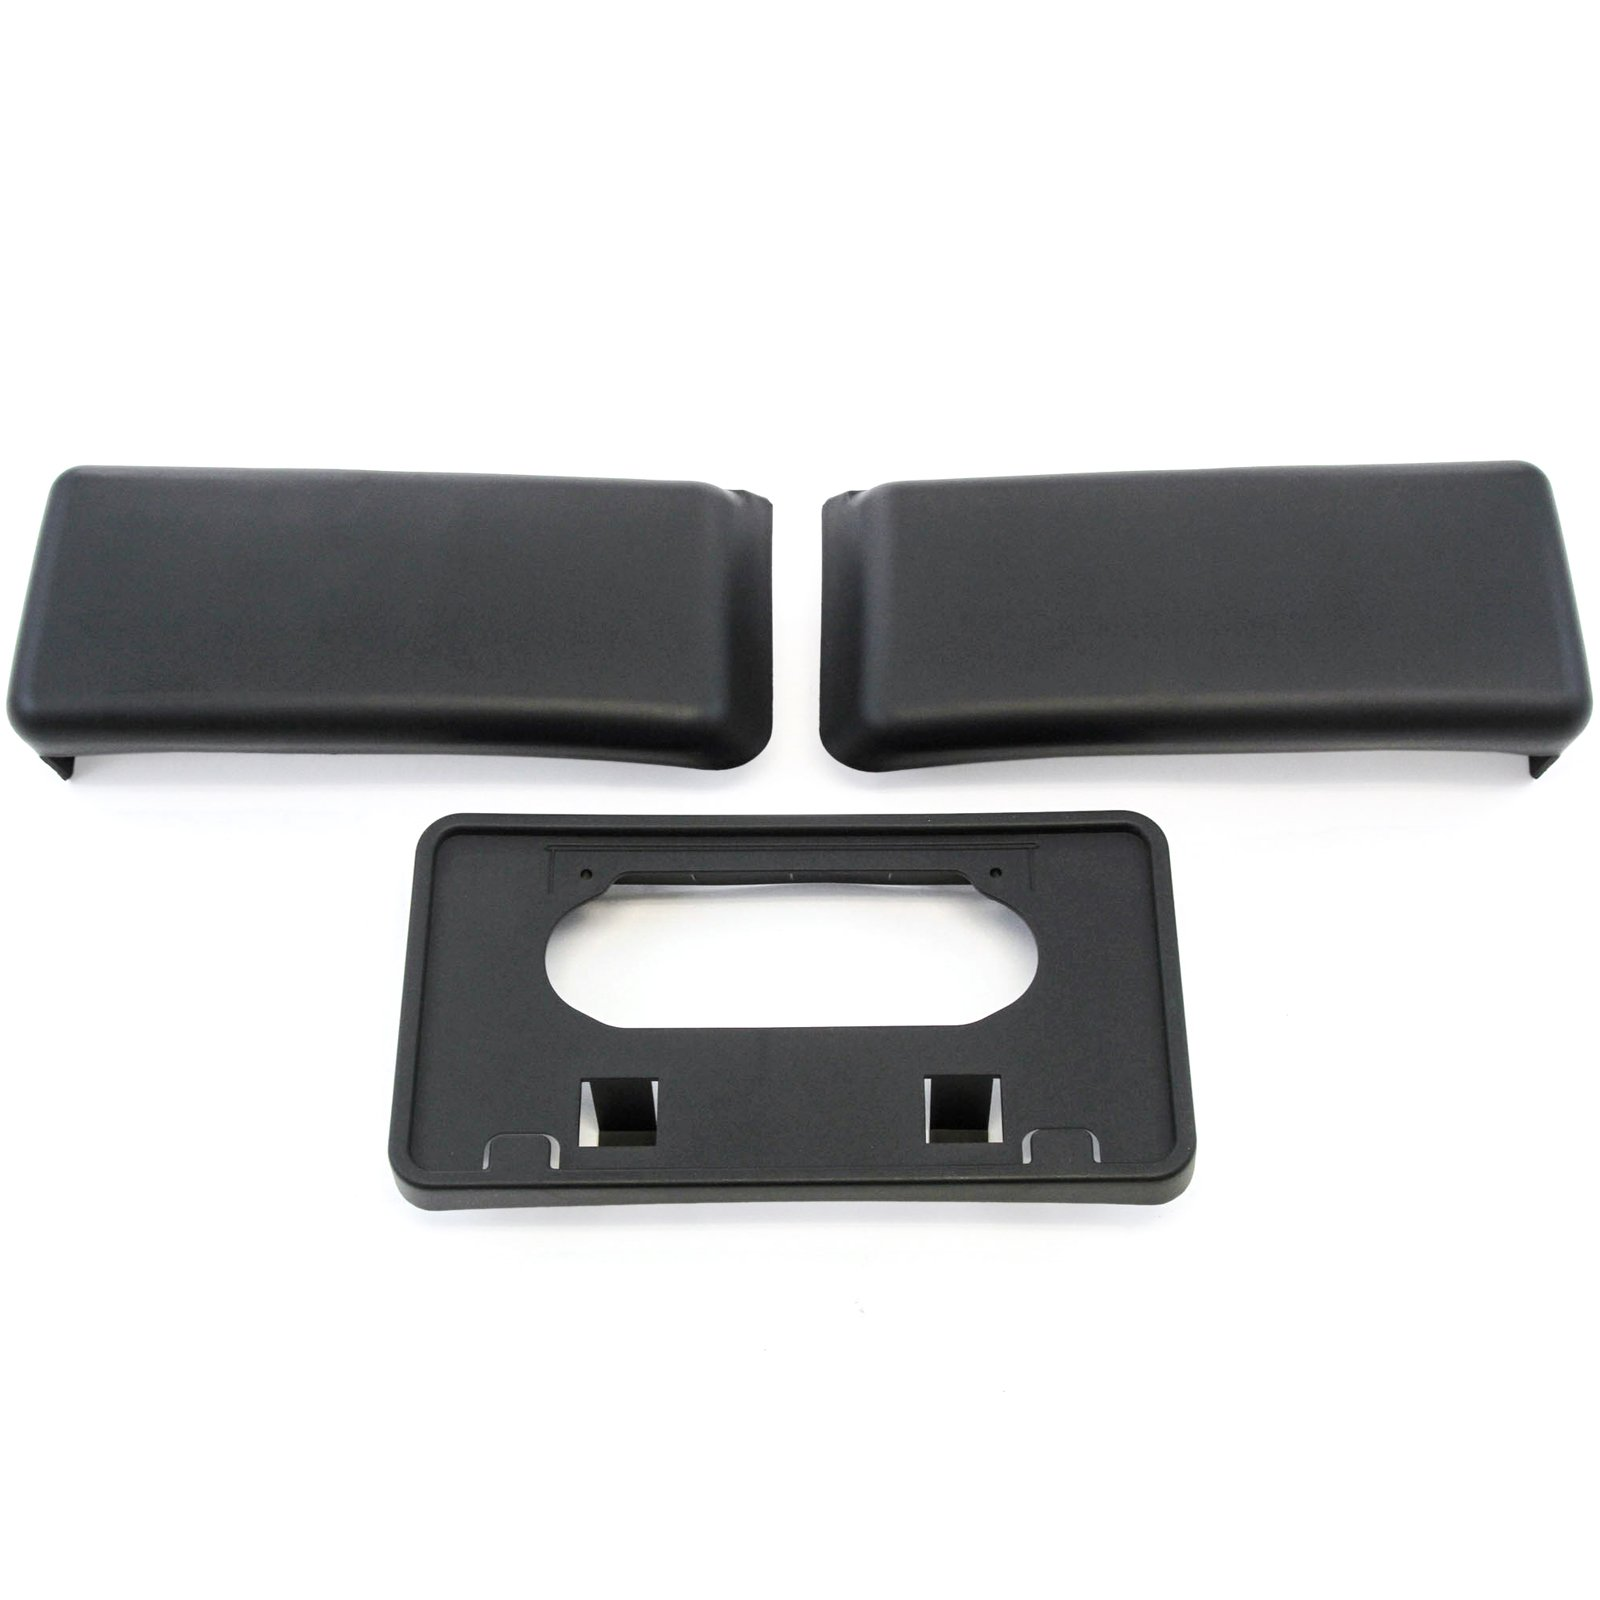 Red Hound Auto Front Bumper Guards Pads & License Plate Tag Bracket Set for 2009-2014 Compatible with Ford F150